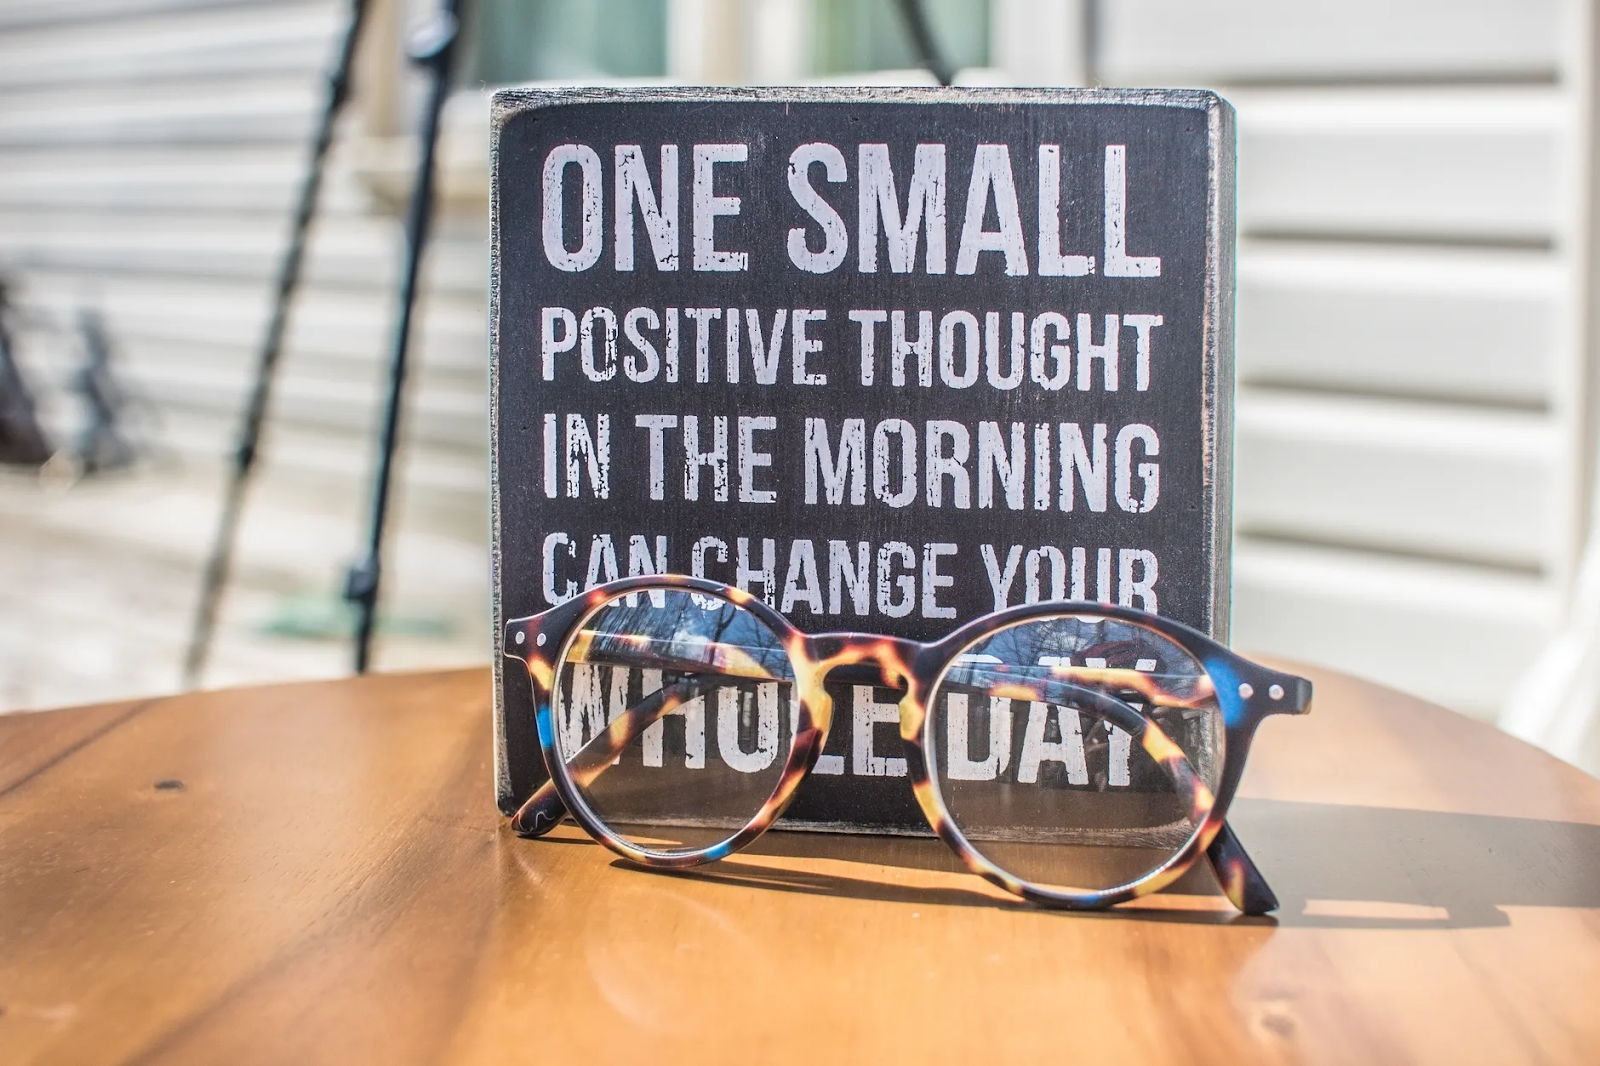 """A sign standing on a table has the words """"One Small Positive Thought in the Morning Can Change Your Whole Day."""" A pair of glasses rests in front of it"""